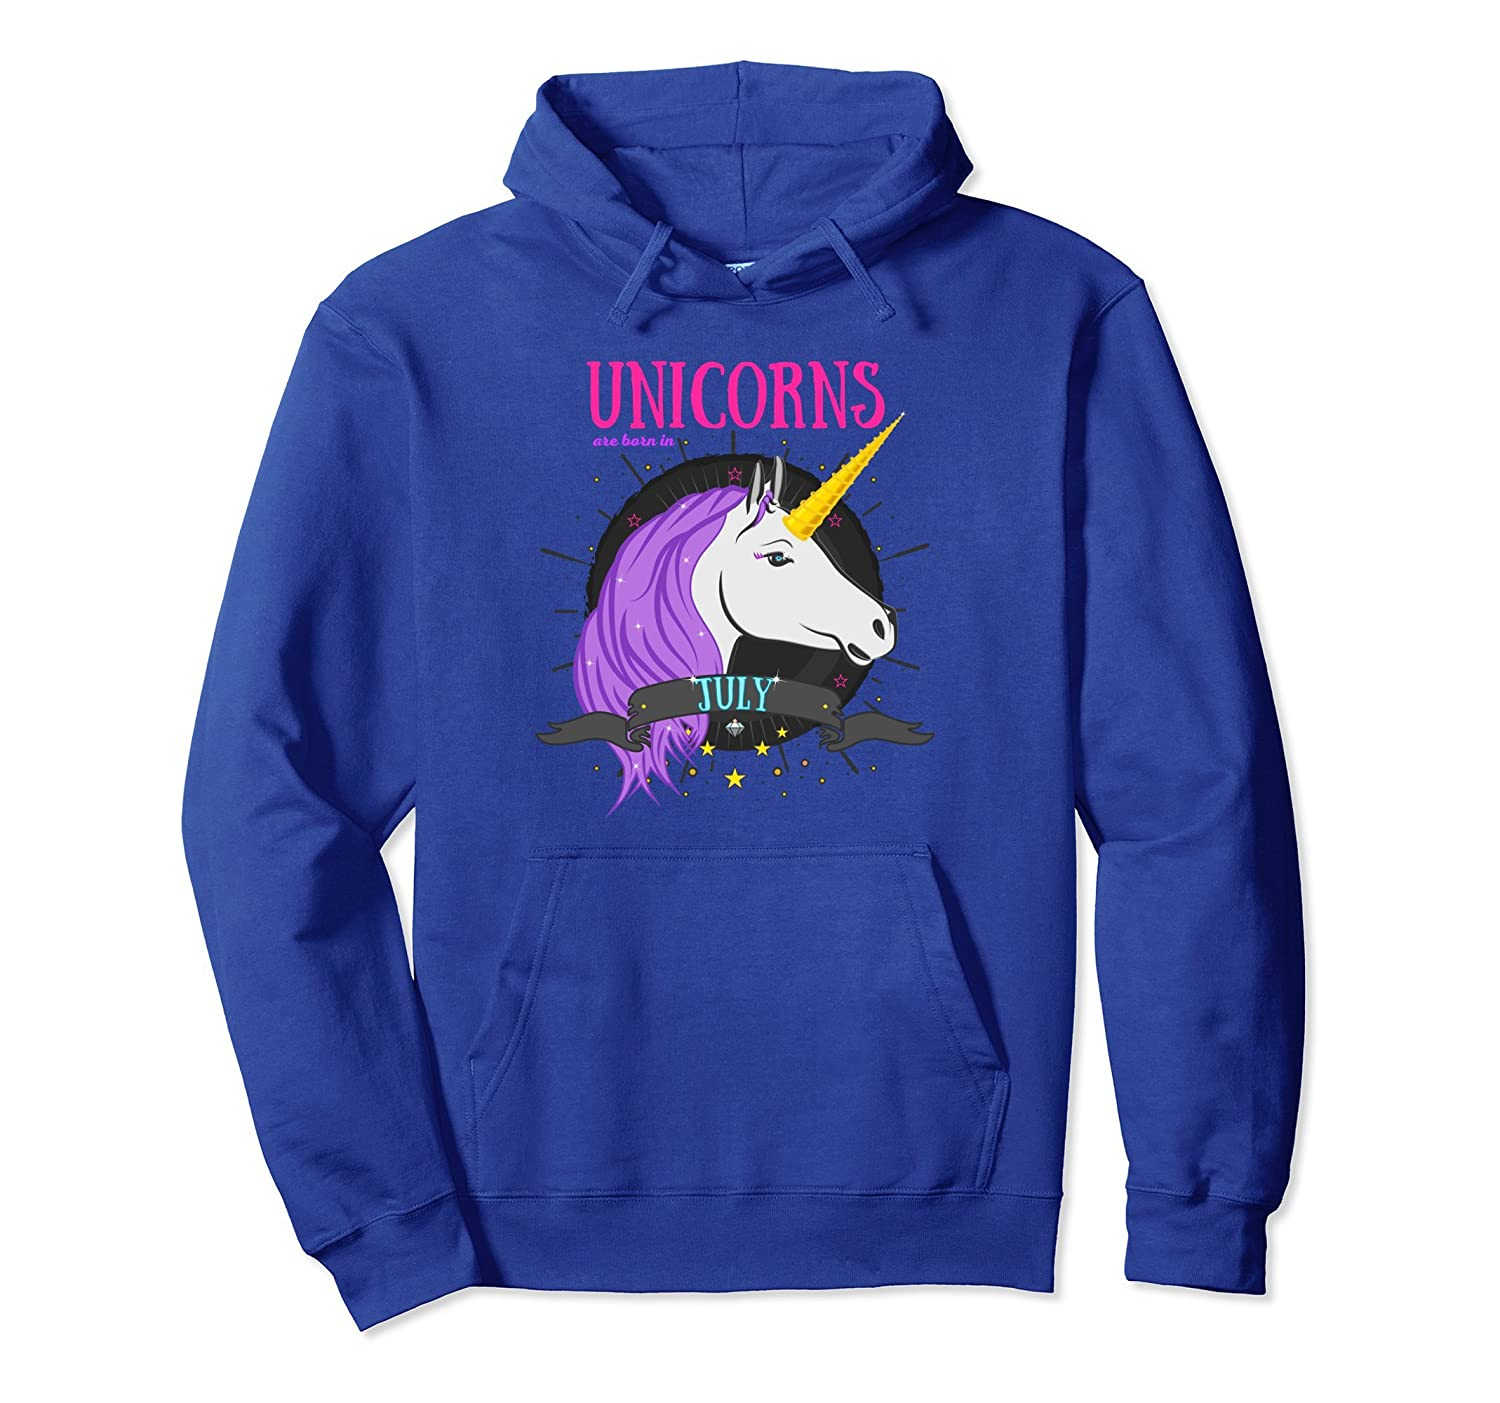 July Birthday Hoodie Outfit Unicorns Are Born In July-Colonhue